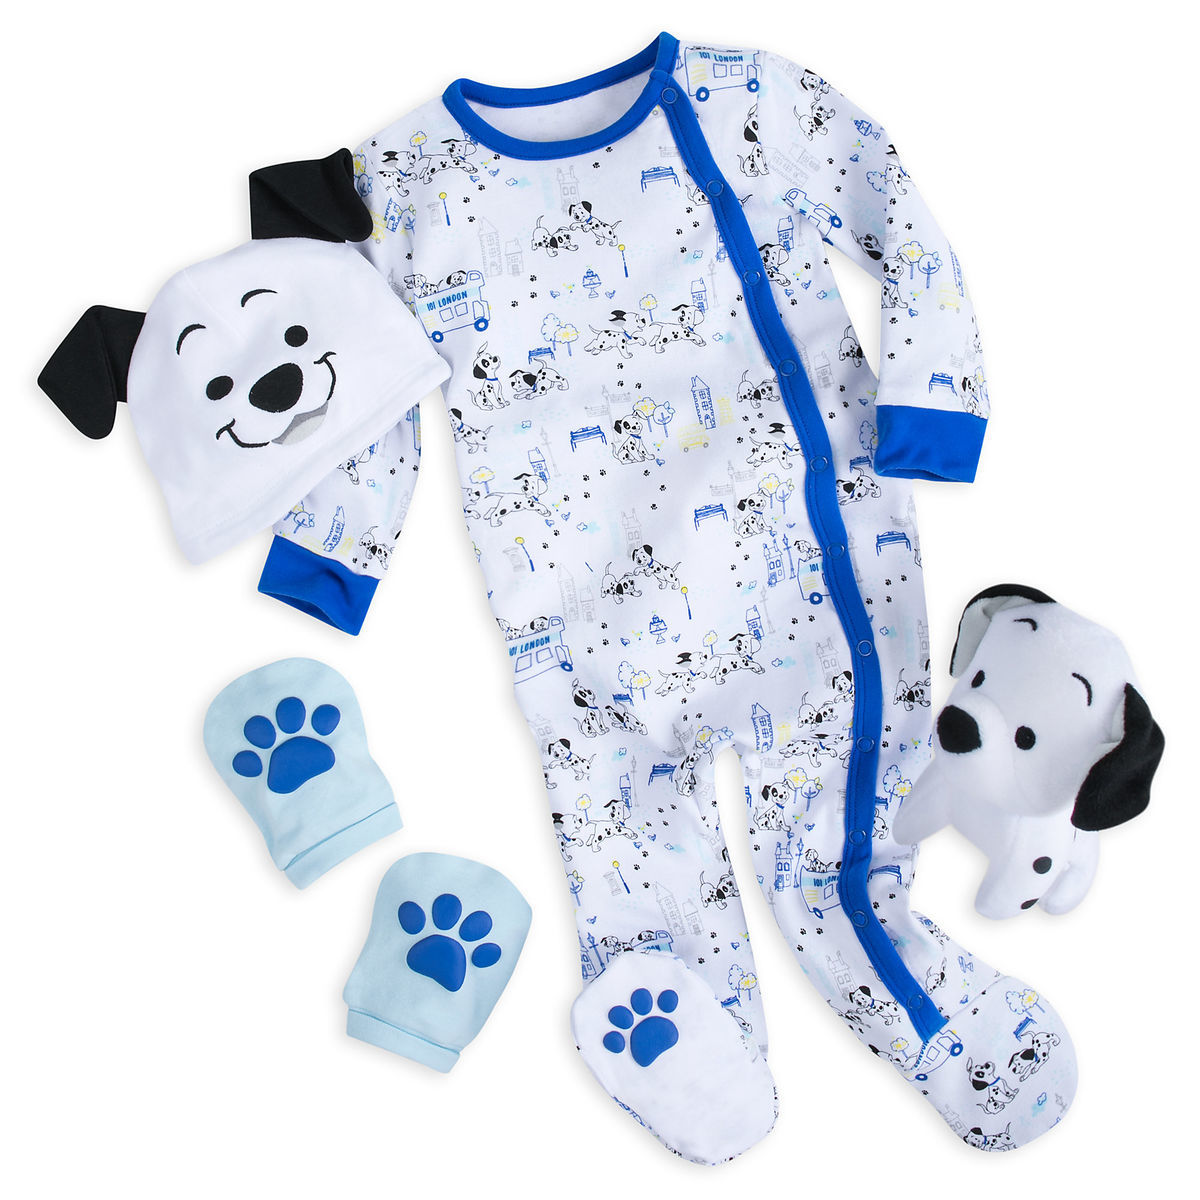 Disney Gift Set for Baby - 101 Dalmatians - 4 Piece Set